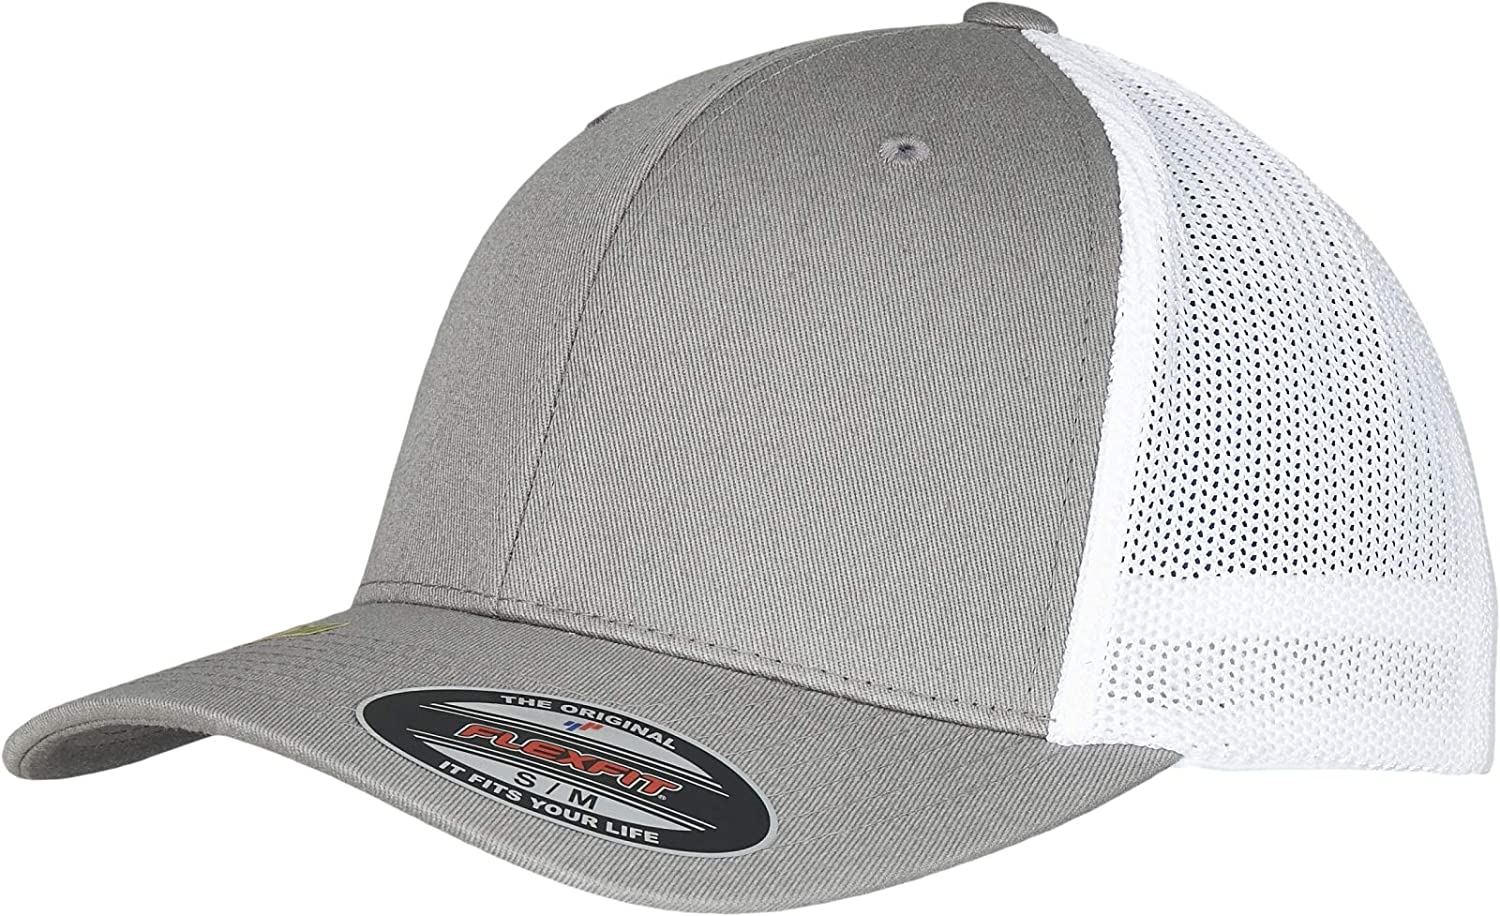 Flexfit Recycled Mesh Trucker Stretchable Cap